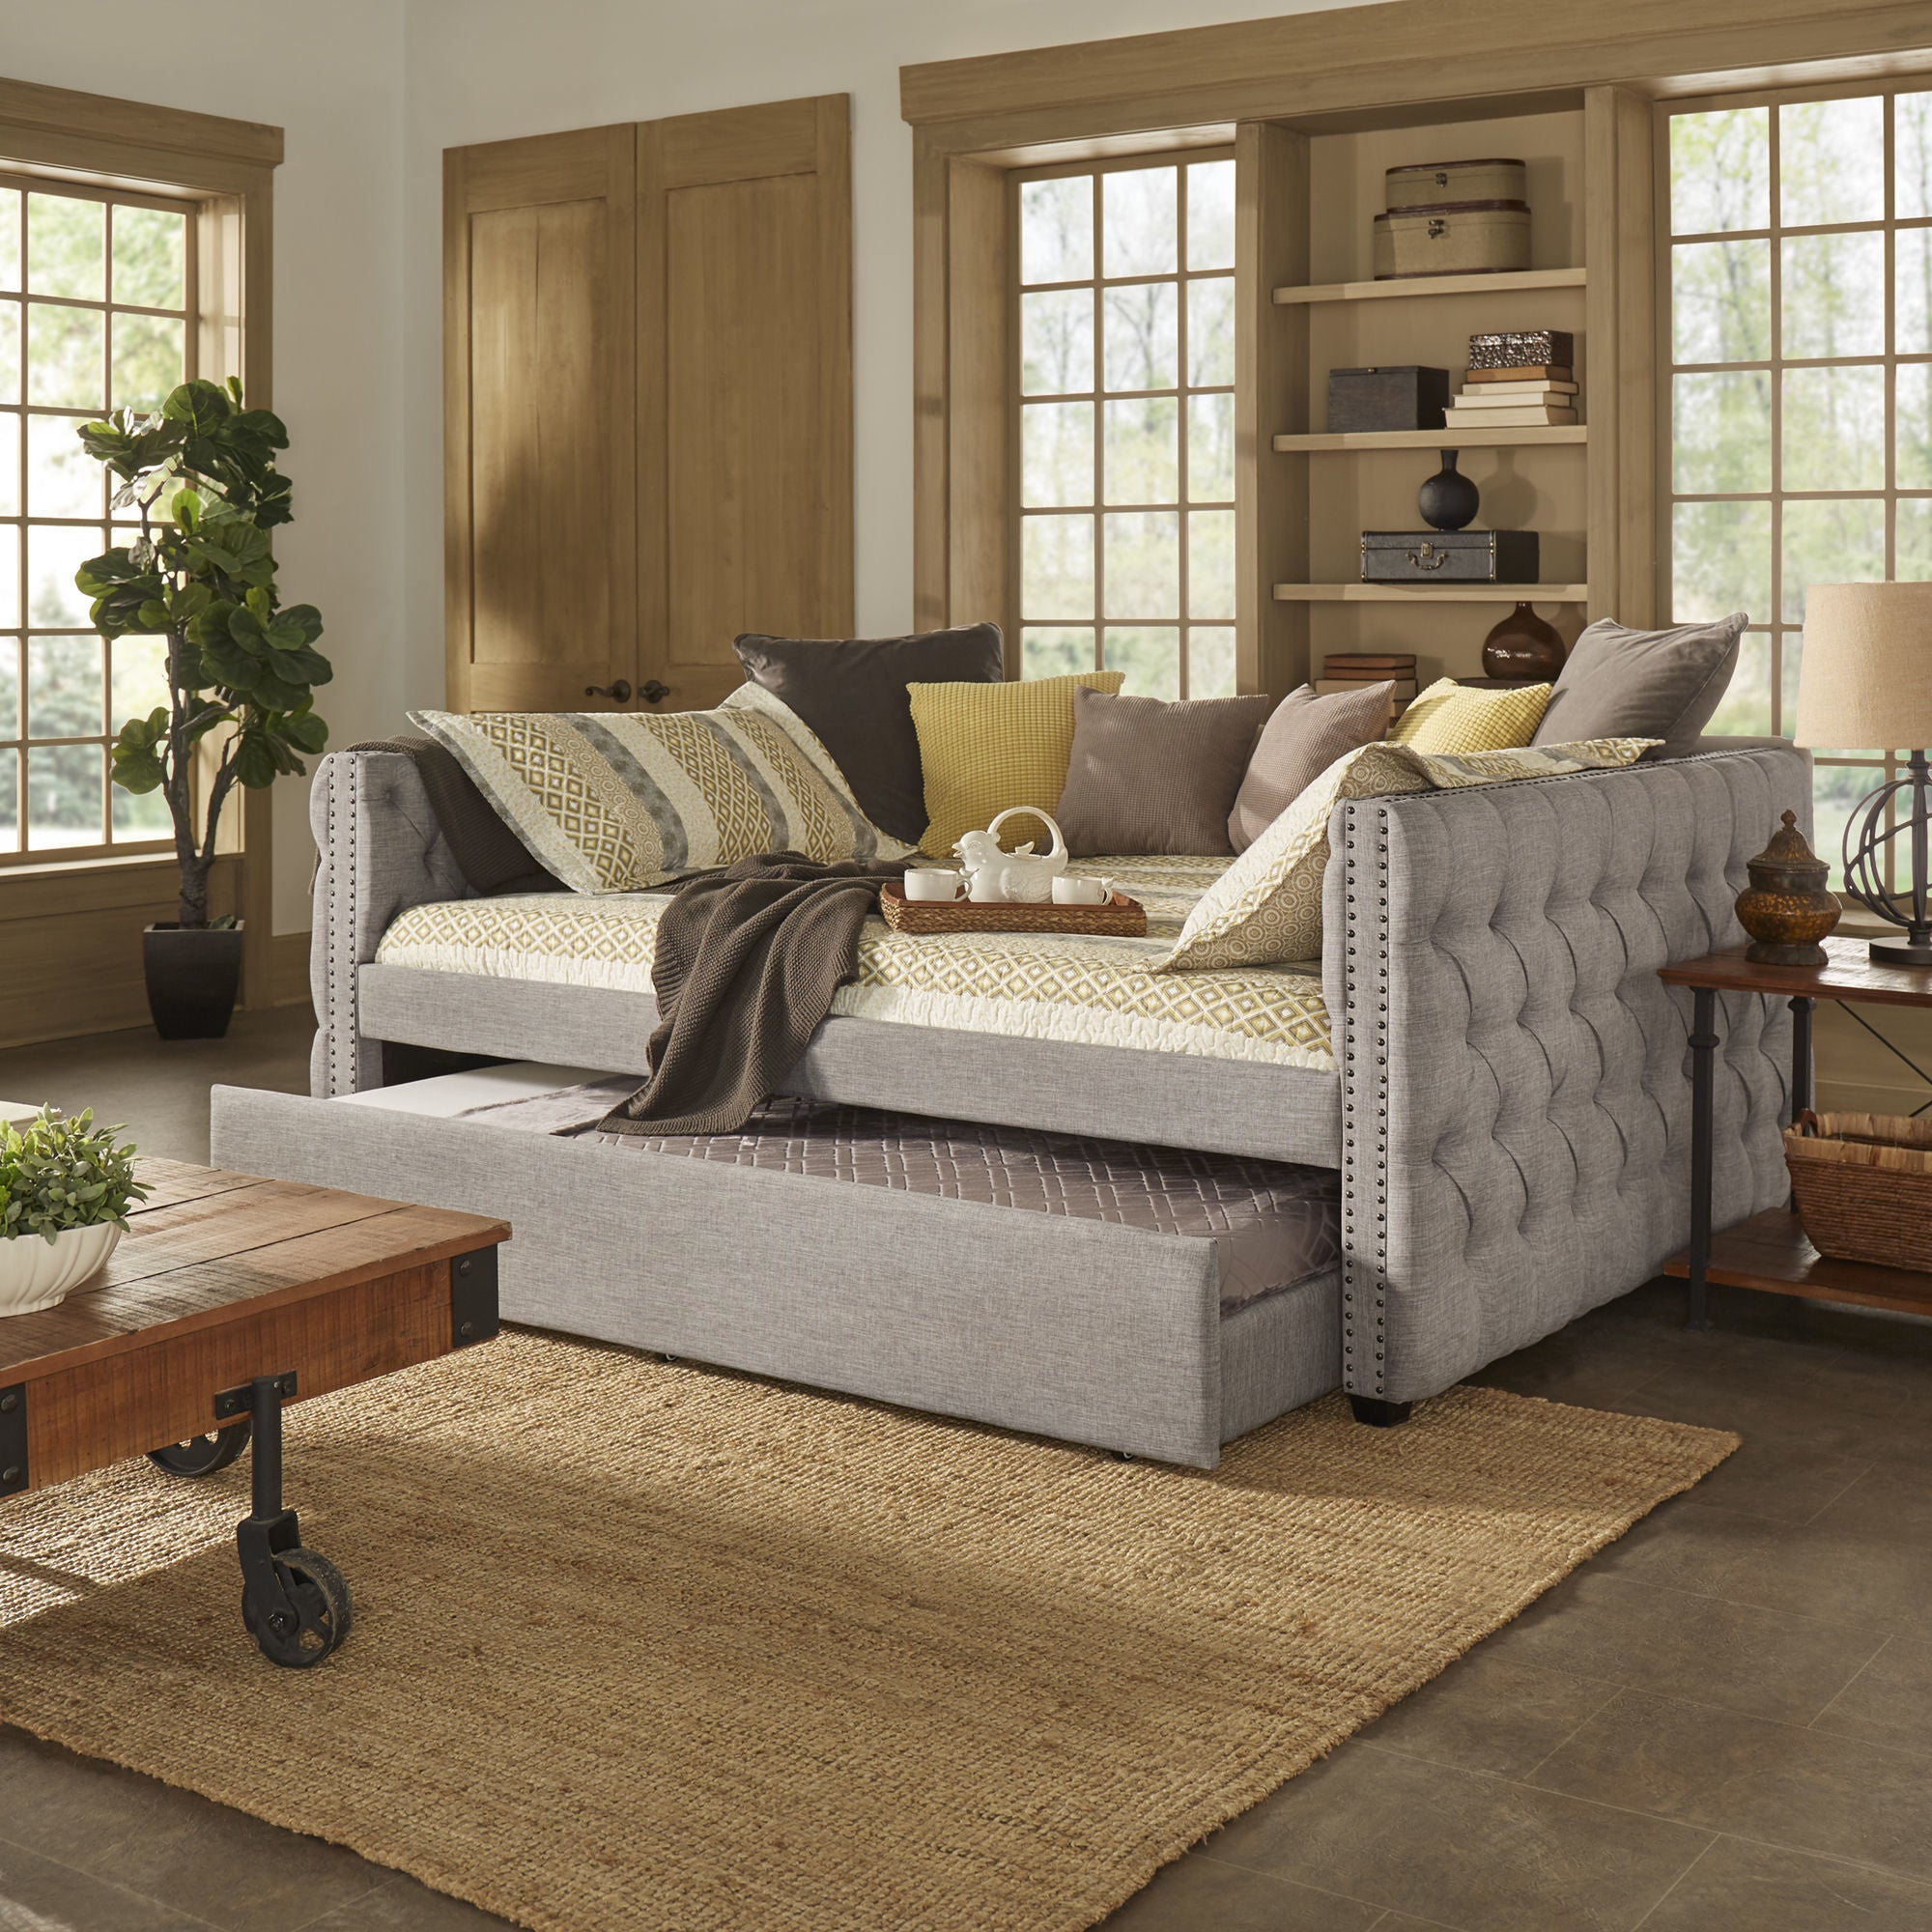 Shop Knightsbridge Full Size Tufted Nailhead Chesterfield Daybed And